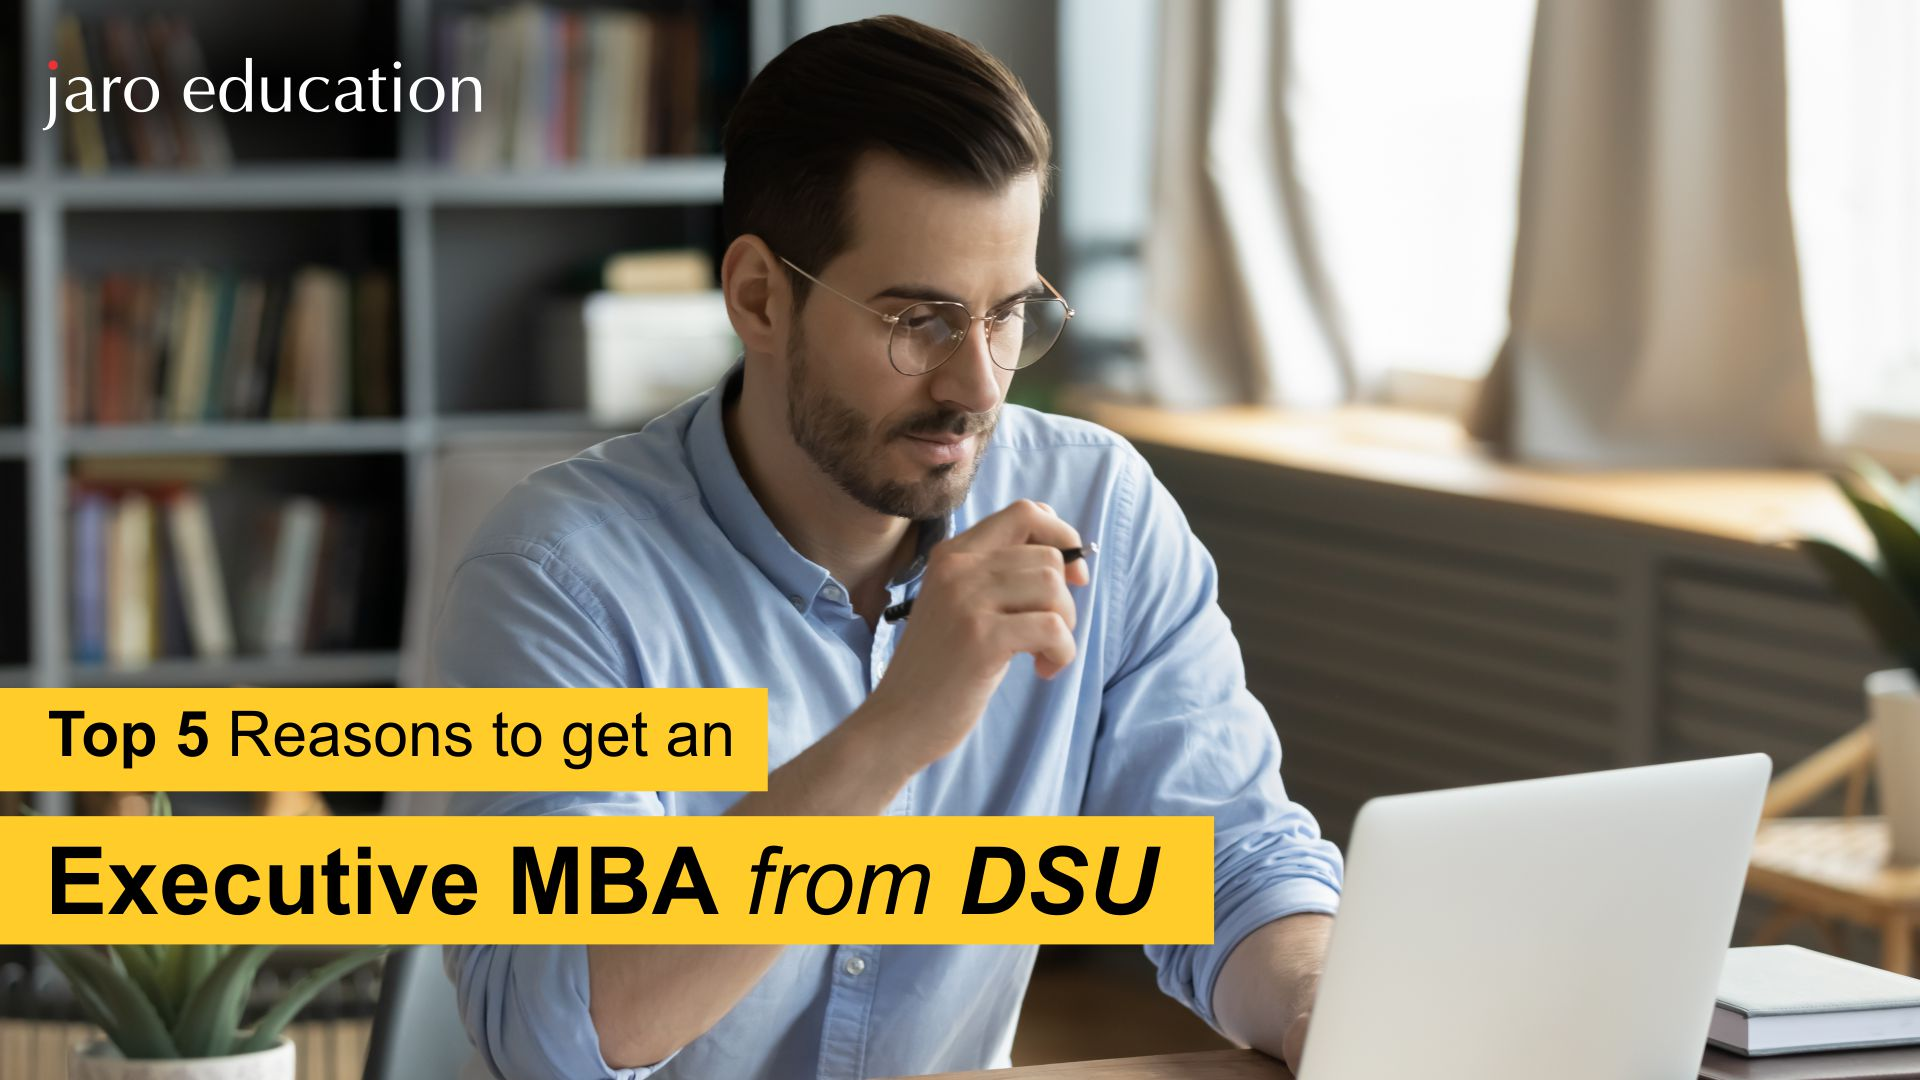 Top 5 Reasons To Get An Executive MBA From DSU